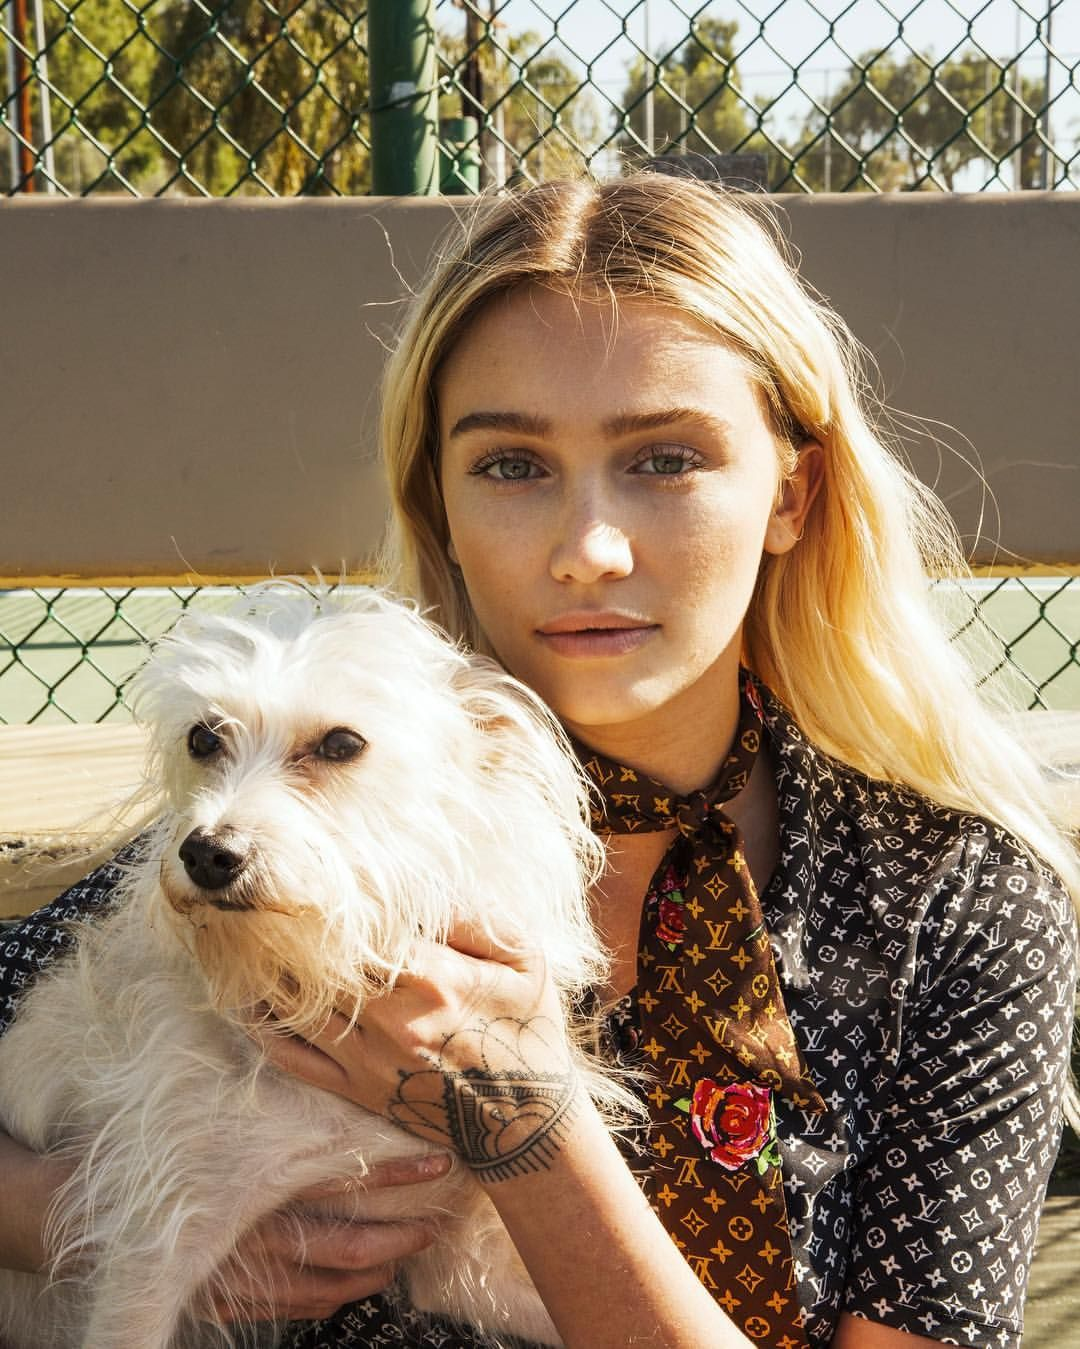 2019 Cailin Russo naked (17 photo), Sexy, Paparazzi, Twitter, underwear 2015